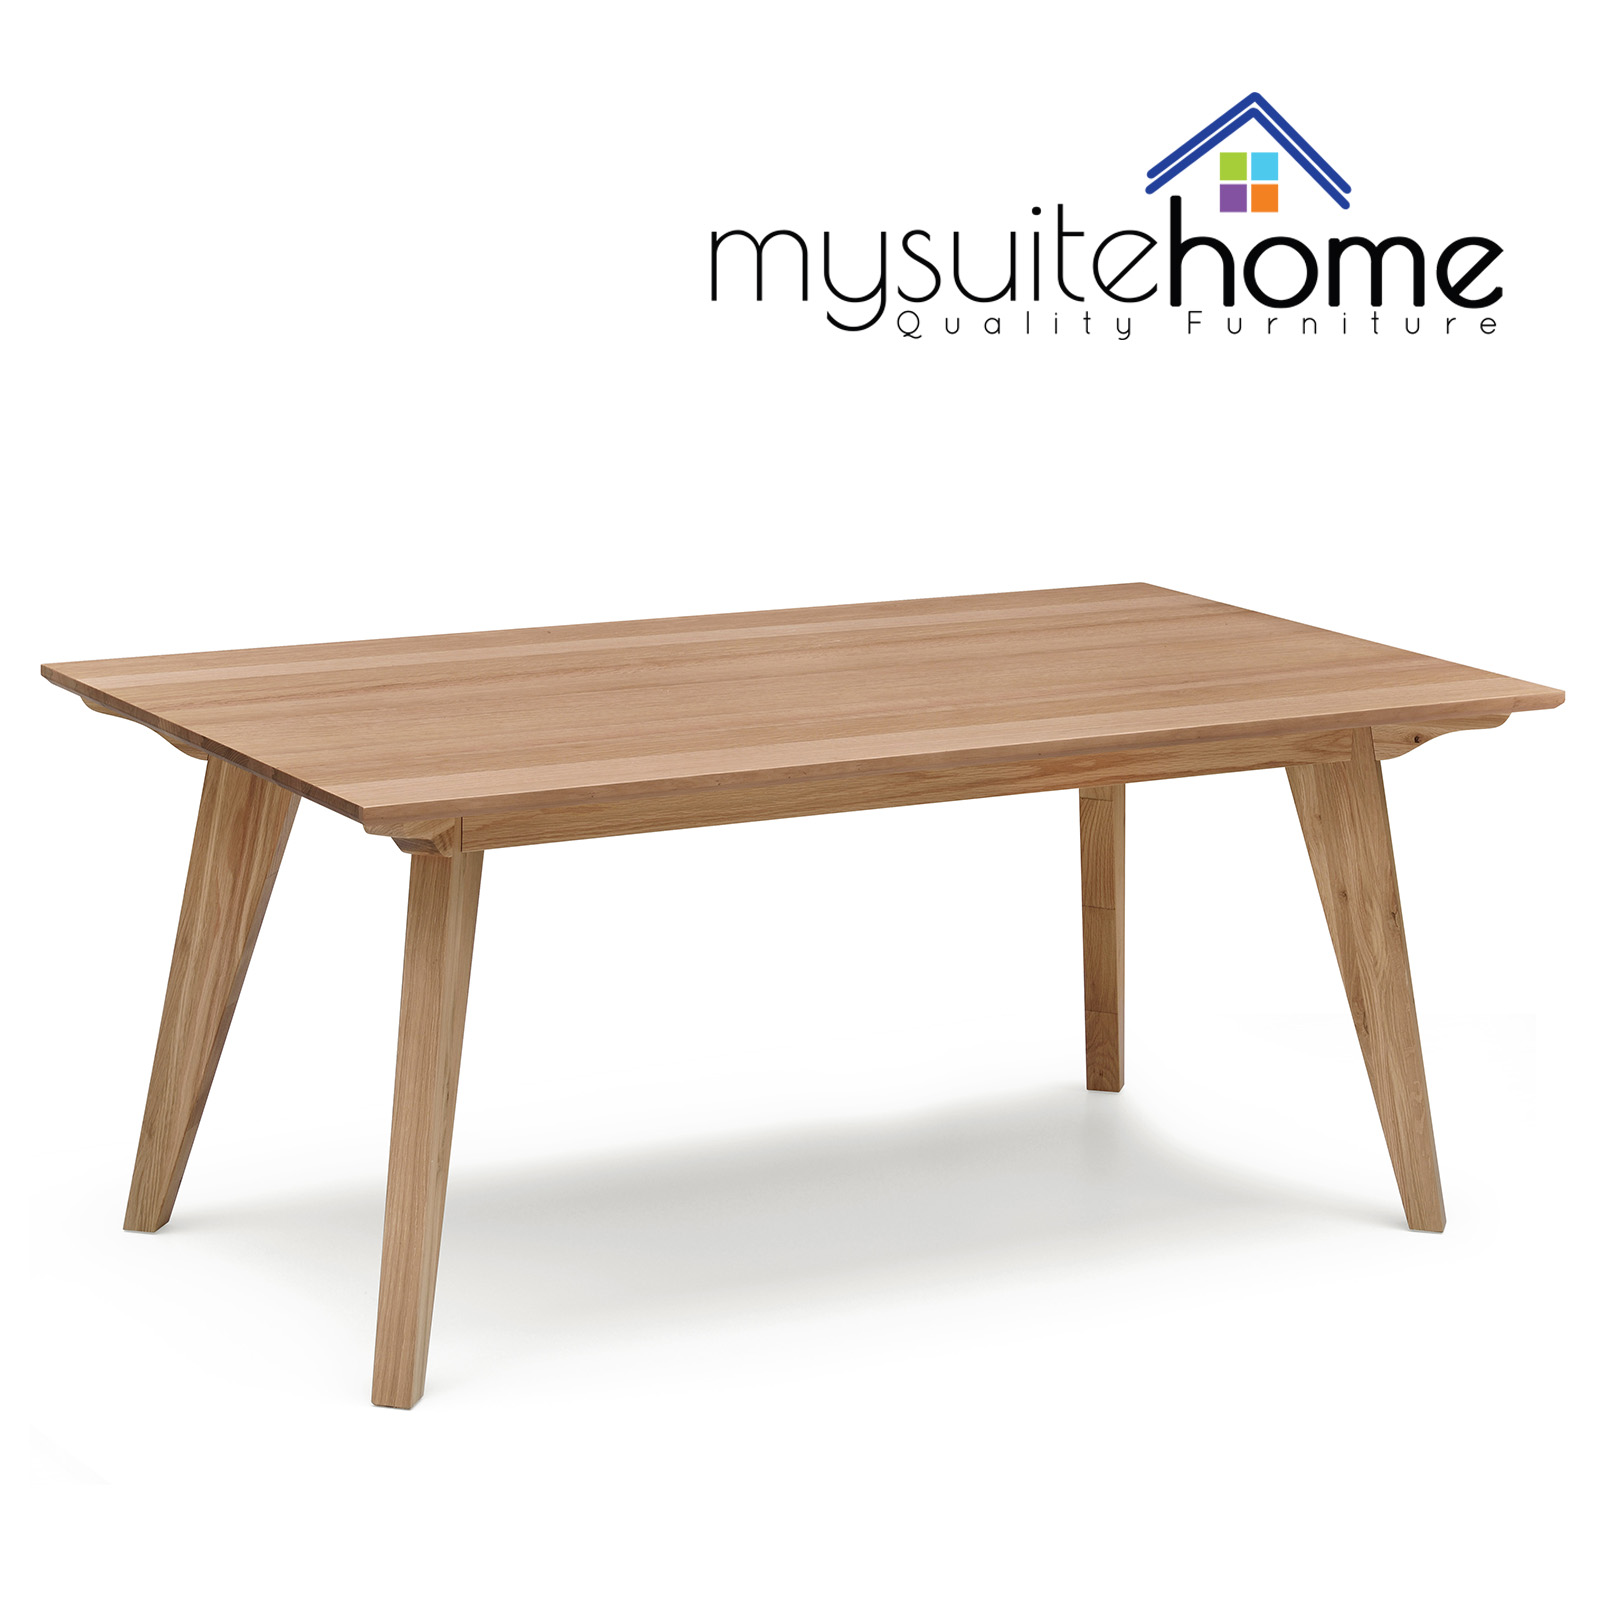 Alison white oak natural veneer dining table modern design ebay - Oak veneer dining table ...